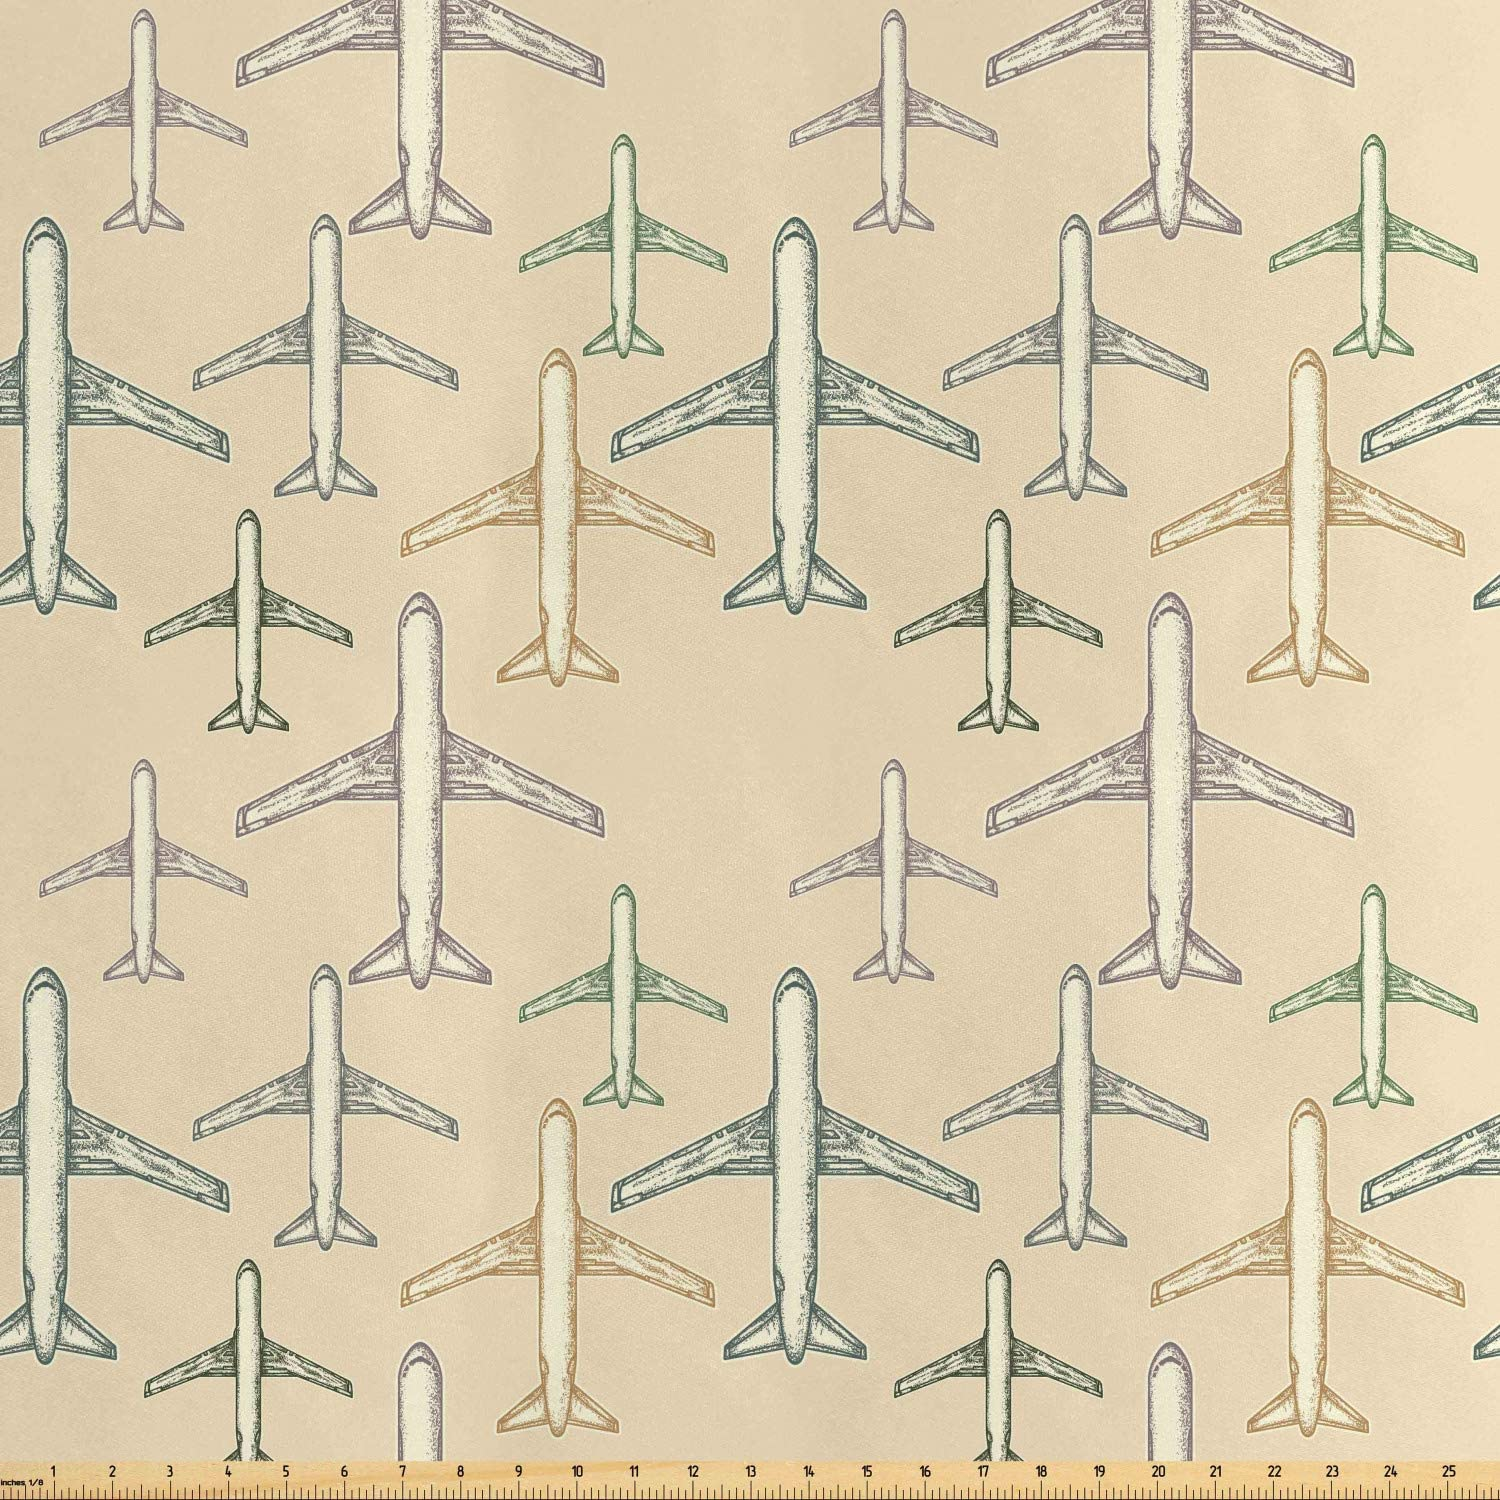 Ambesonne Vintage Airplane Fabric by The Yard, Transportation Vacation Themed Hand Drawn Commercial Airplane Silhouettes, Decorative Satin Fabric for Home Textiles and Crafts, Multicolor